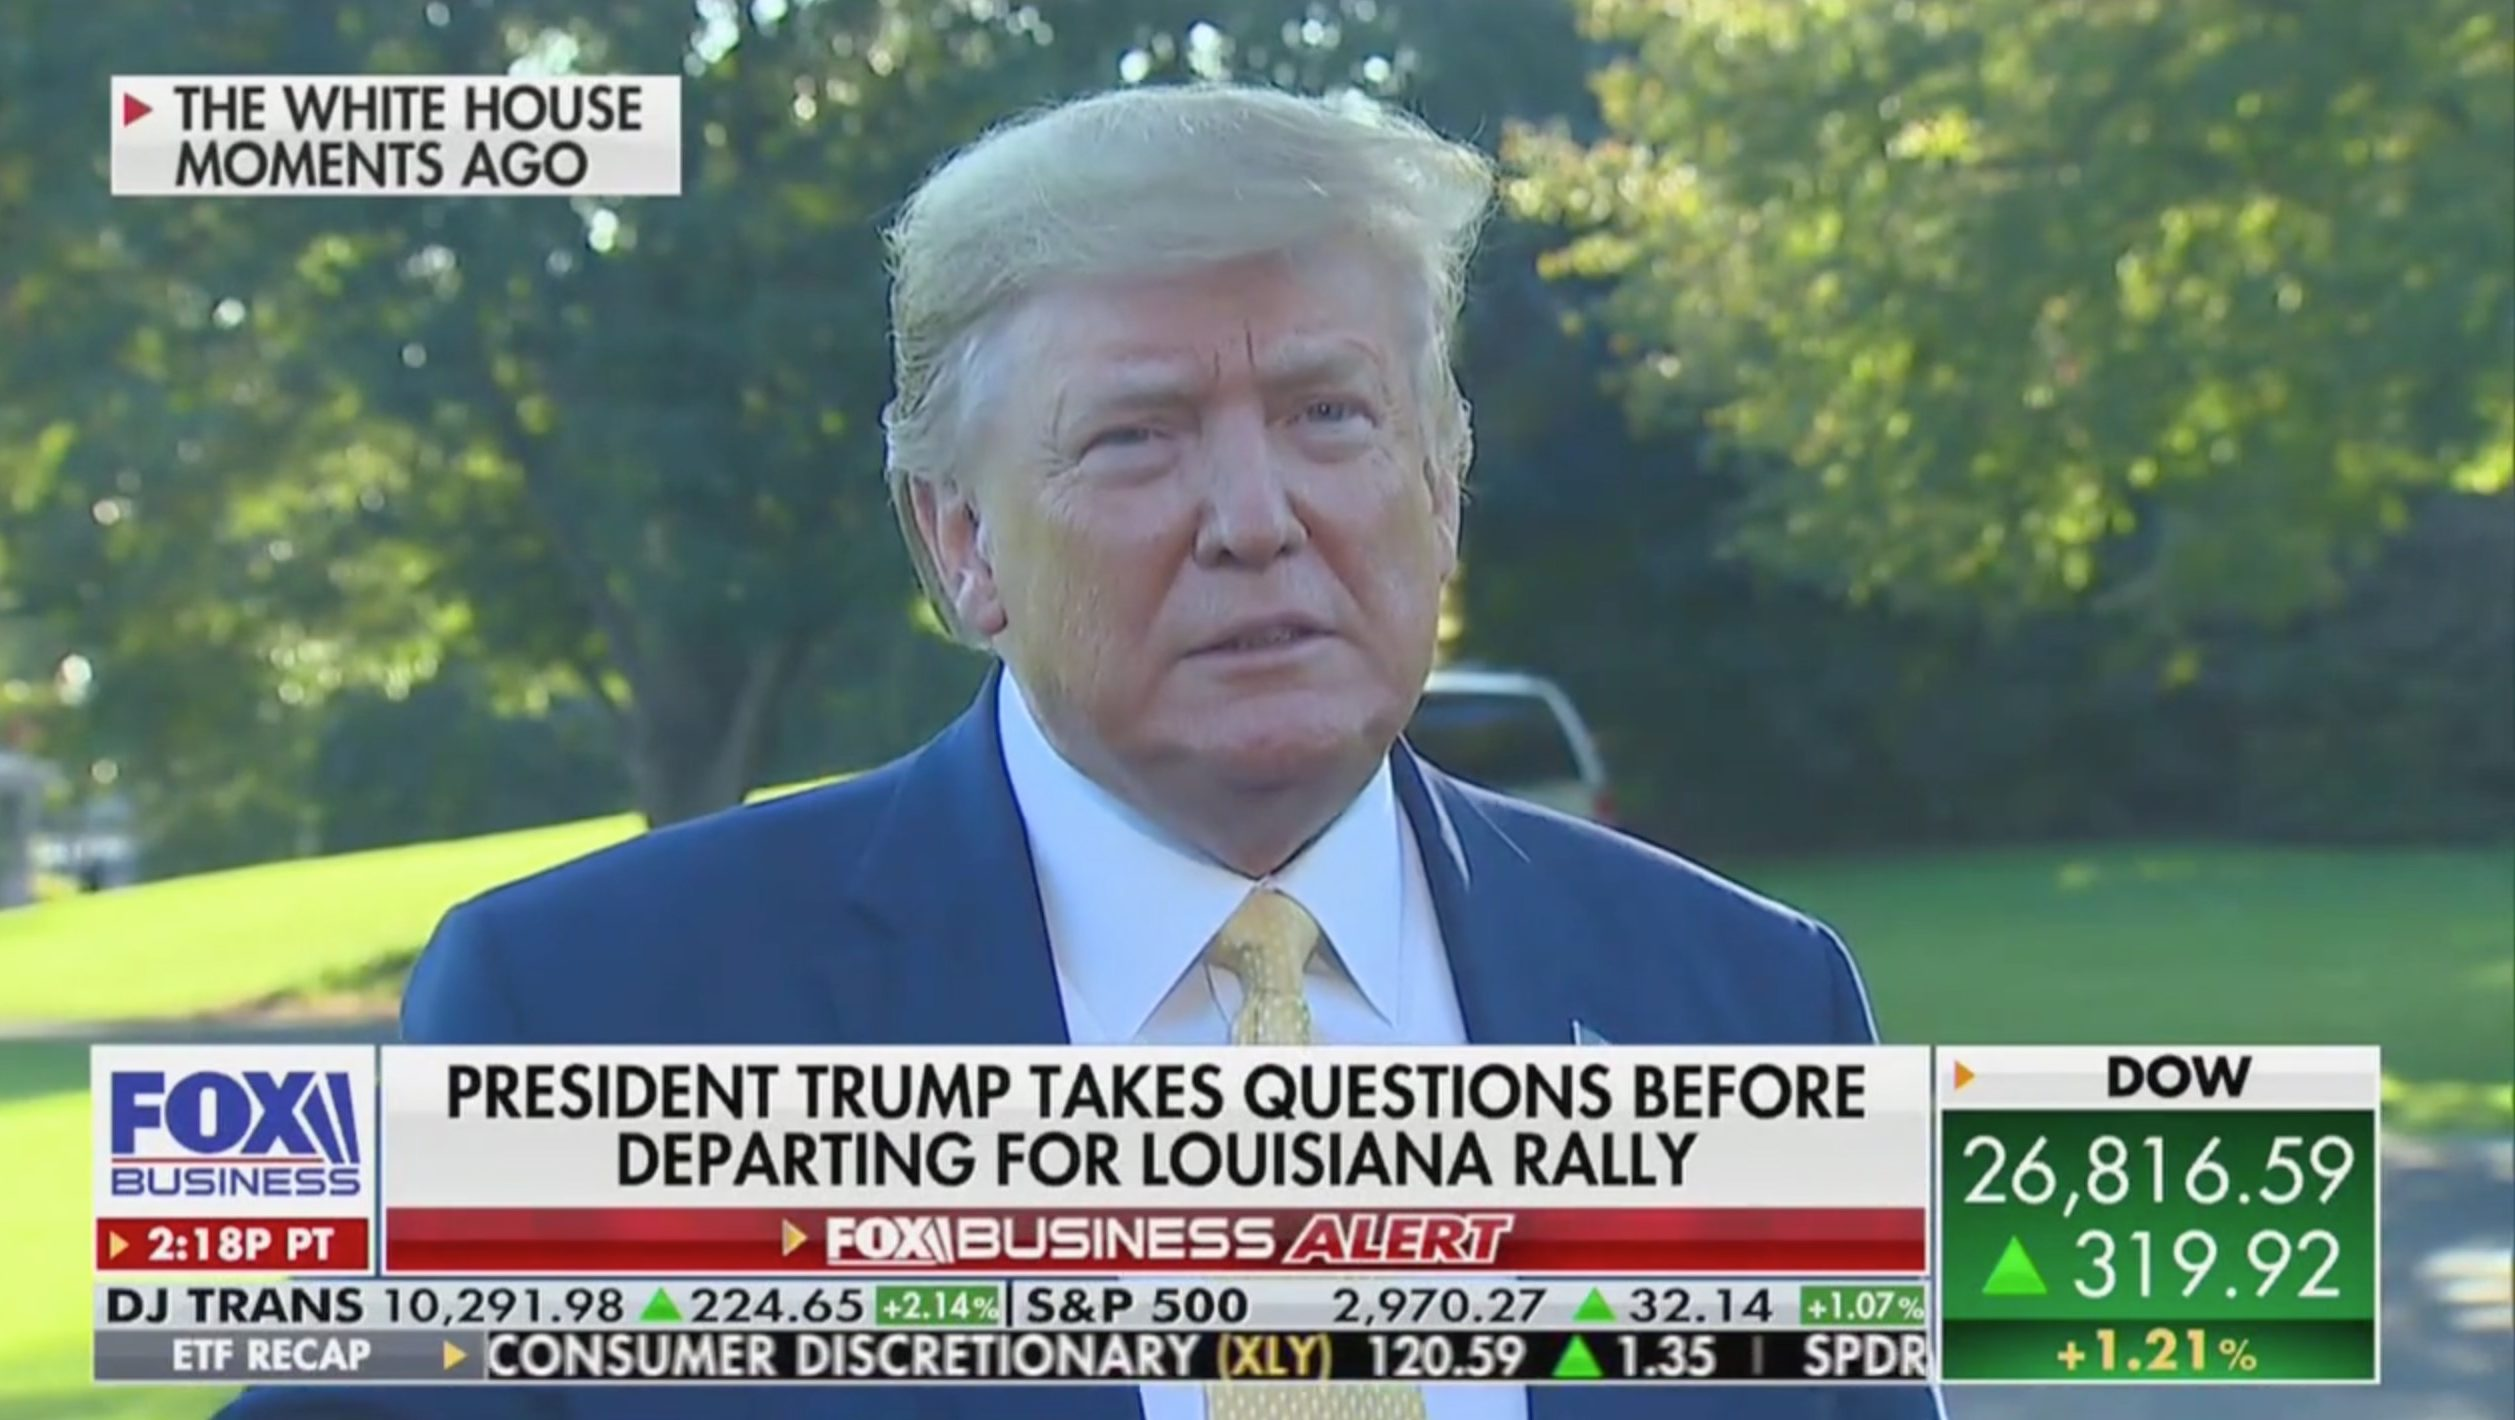 'Oh, That's a Shame': Trump Gleefully Reacts to Shepard Smith's Fox News Exit